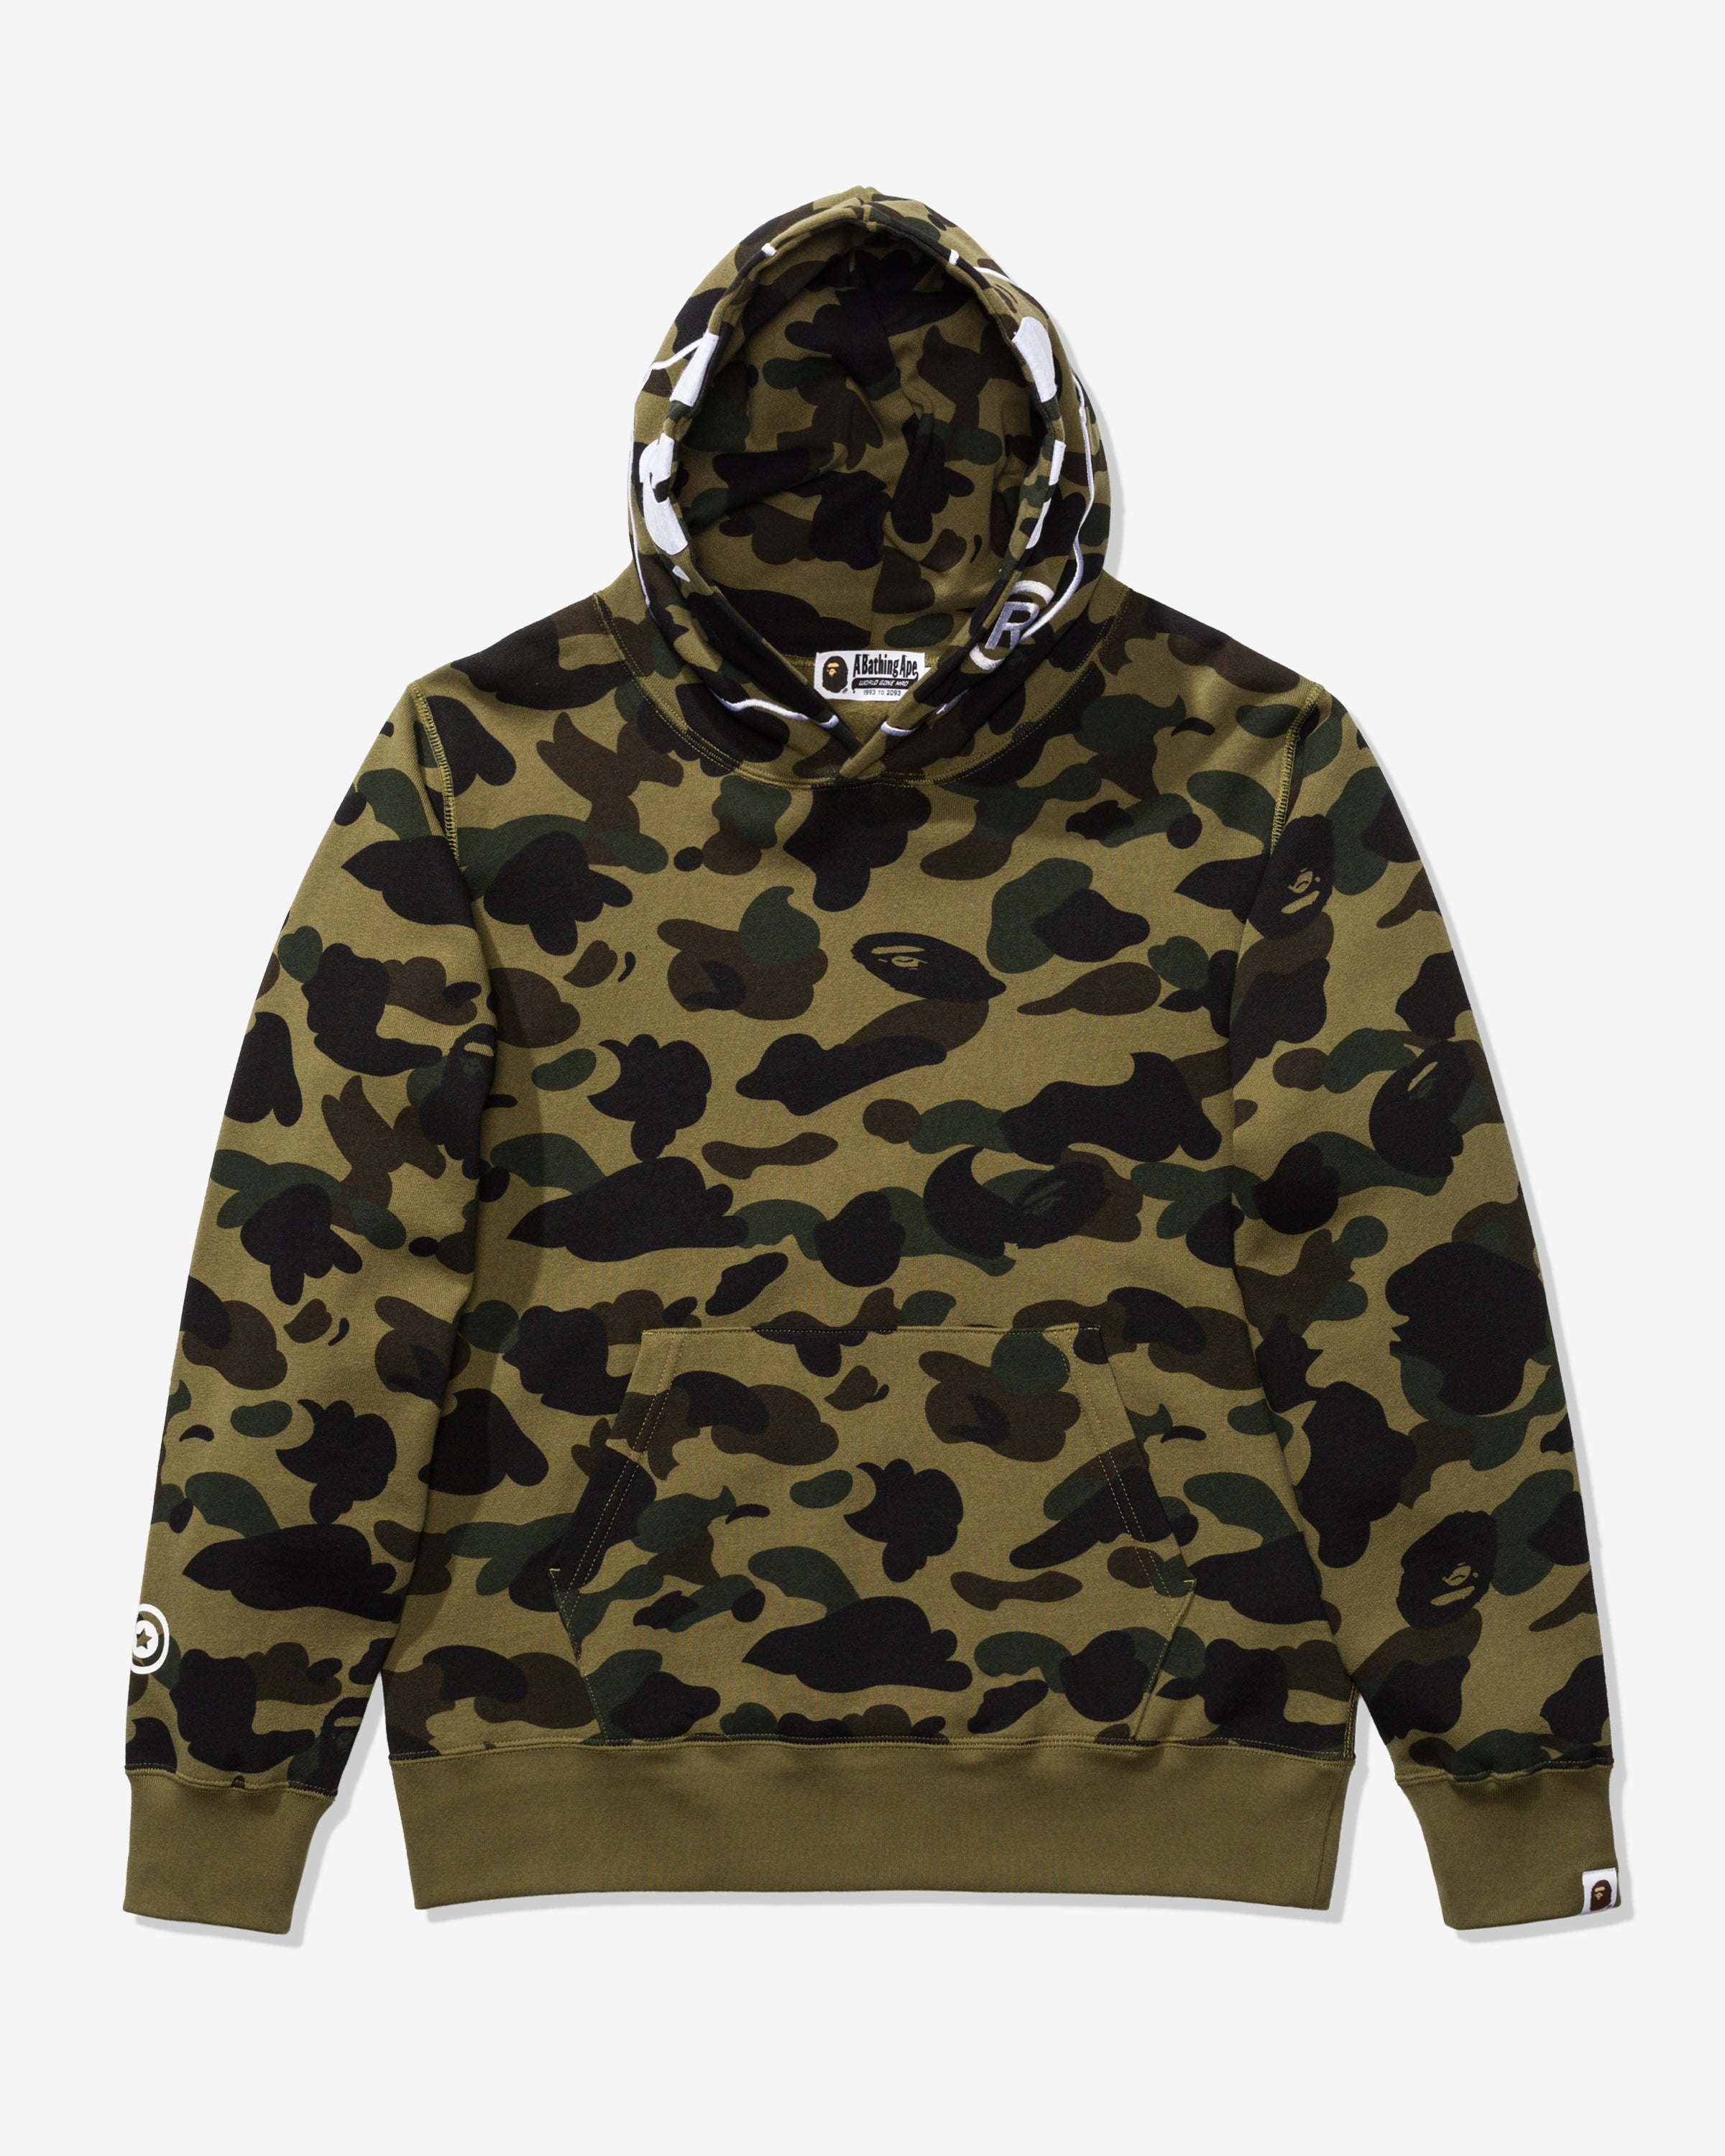 BAPE 1ST CAMO 2ND APE PULLOVER HOODIE - GREEN